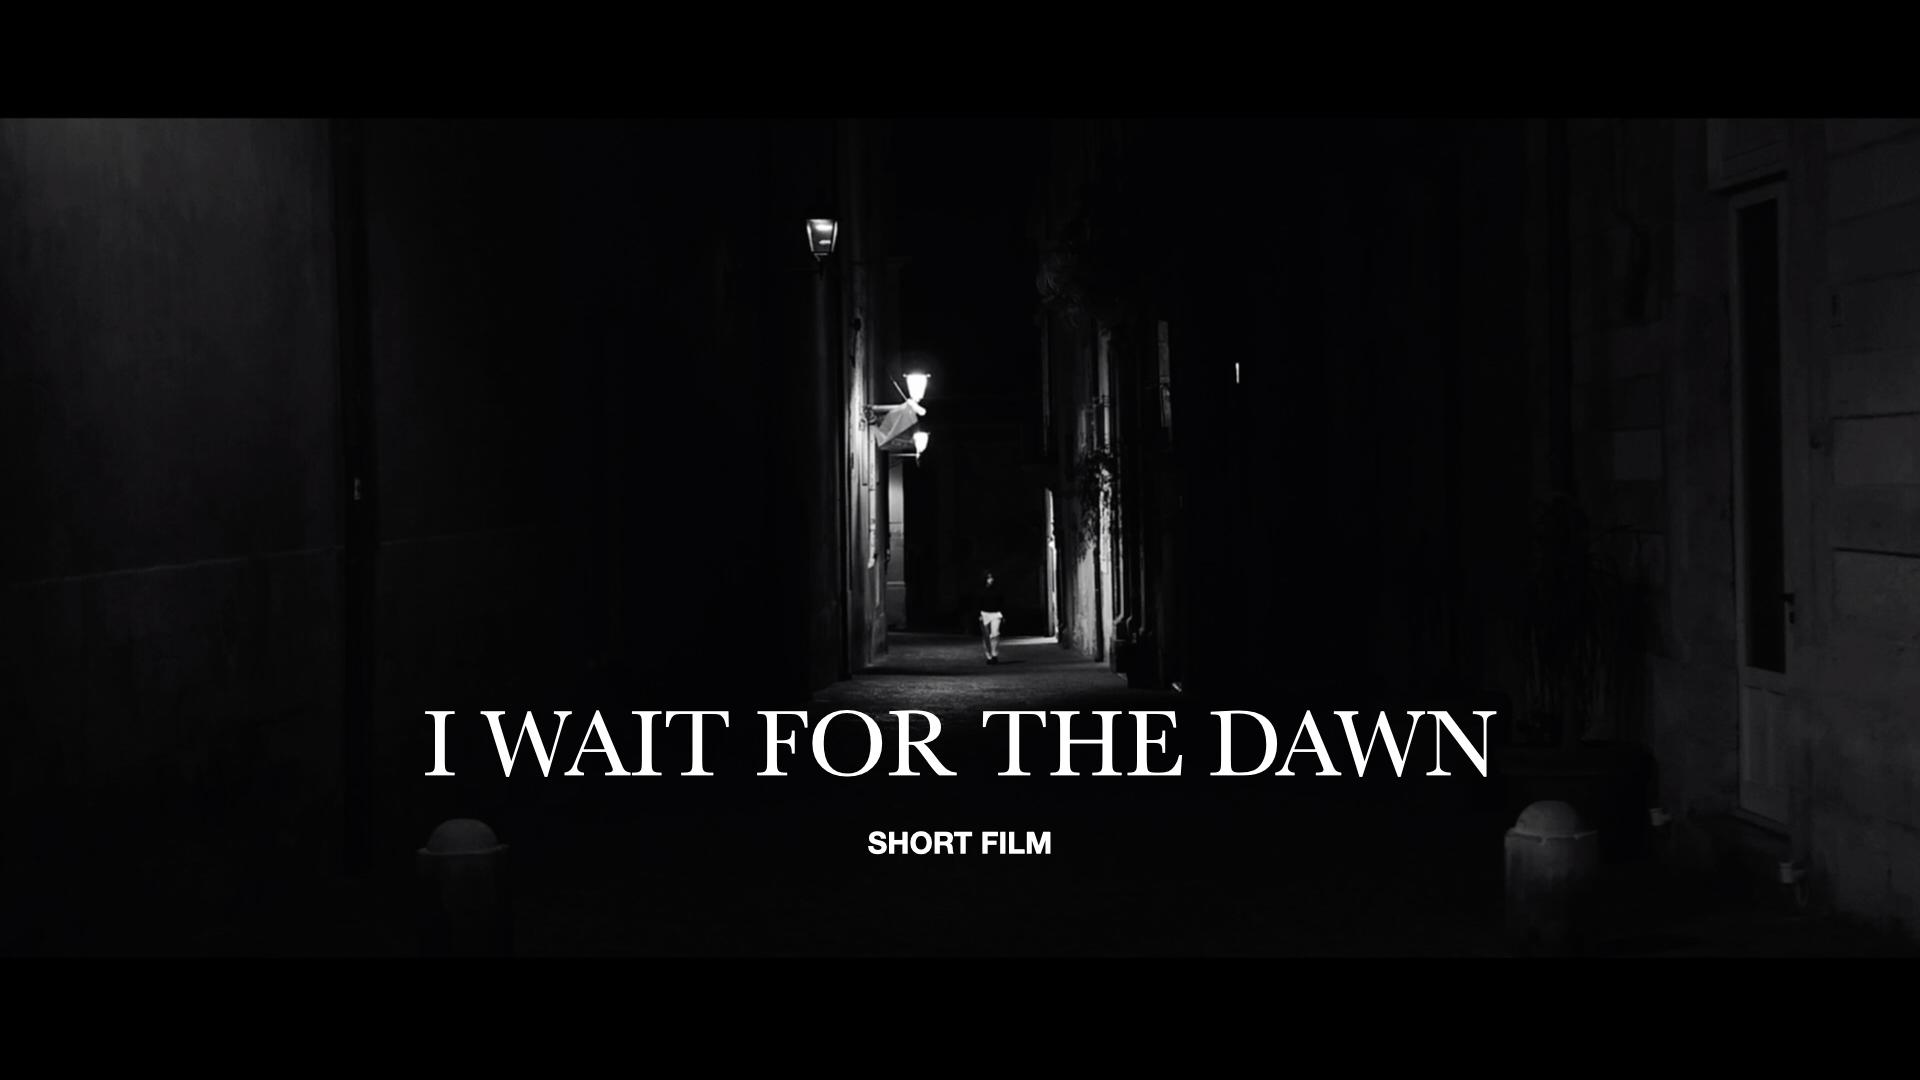 I wait for the dawn